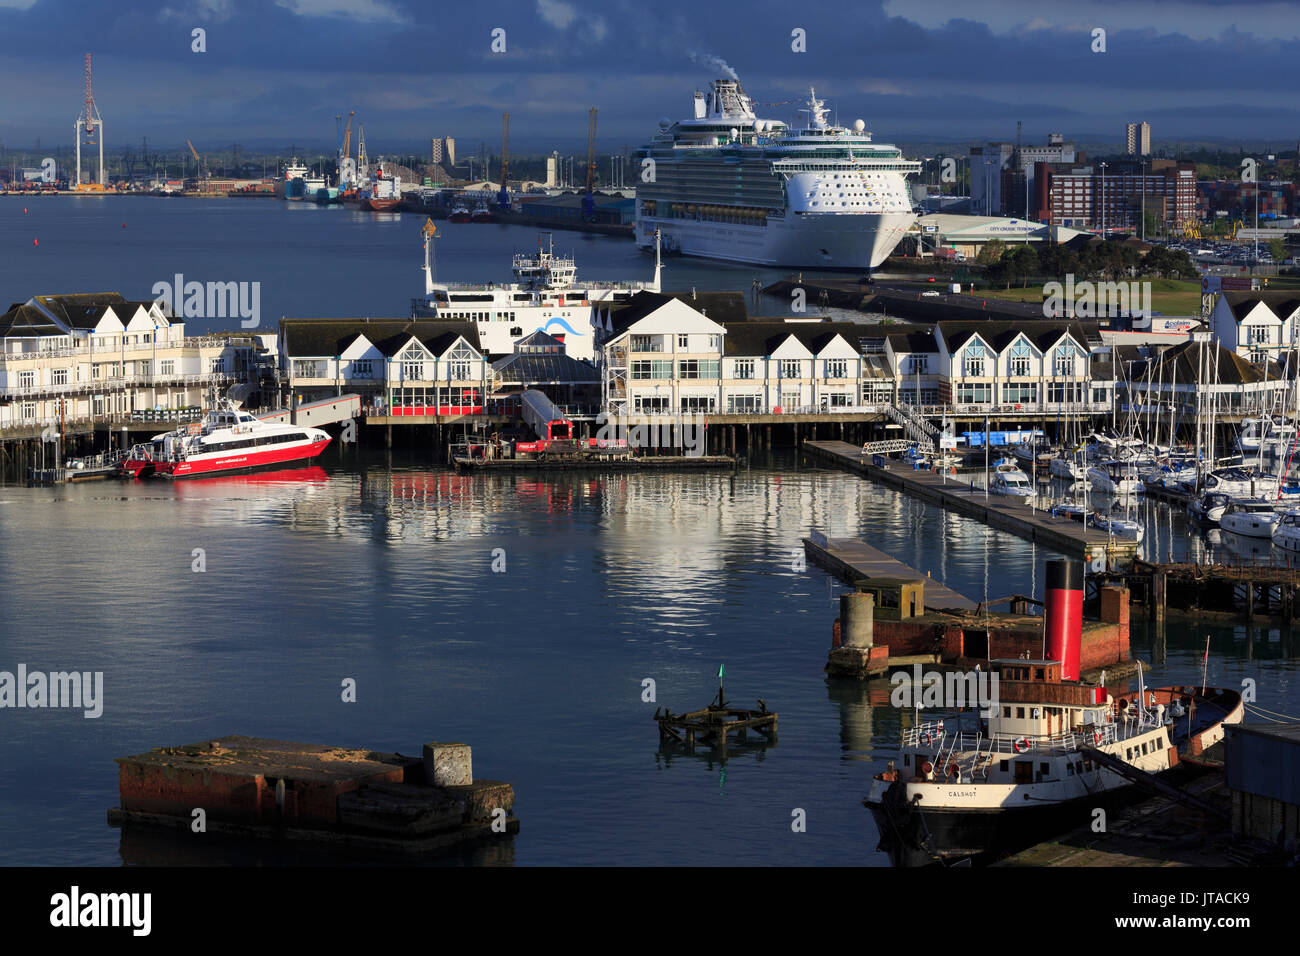 Town Quay, Port of Southampton, Hampshire, England, United Kingdom, Europe - Stock Image